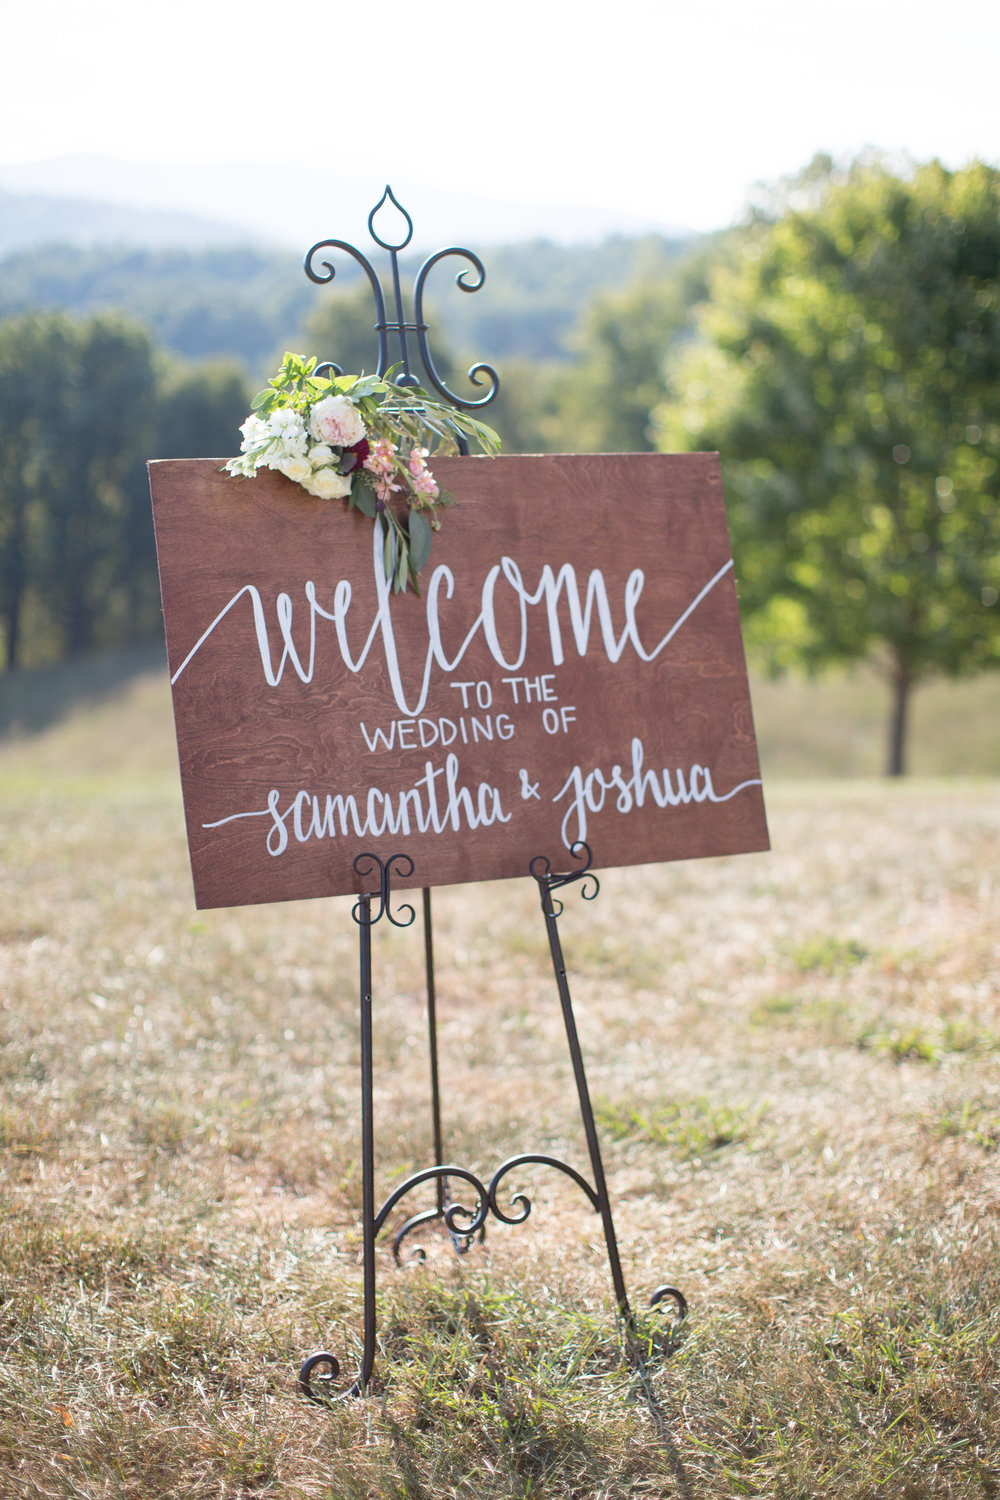 f1de1-ashevillencmountainweddingwelcomesignashevillencmountainweddingwelcomesign.jpg